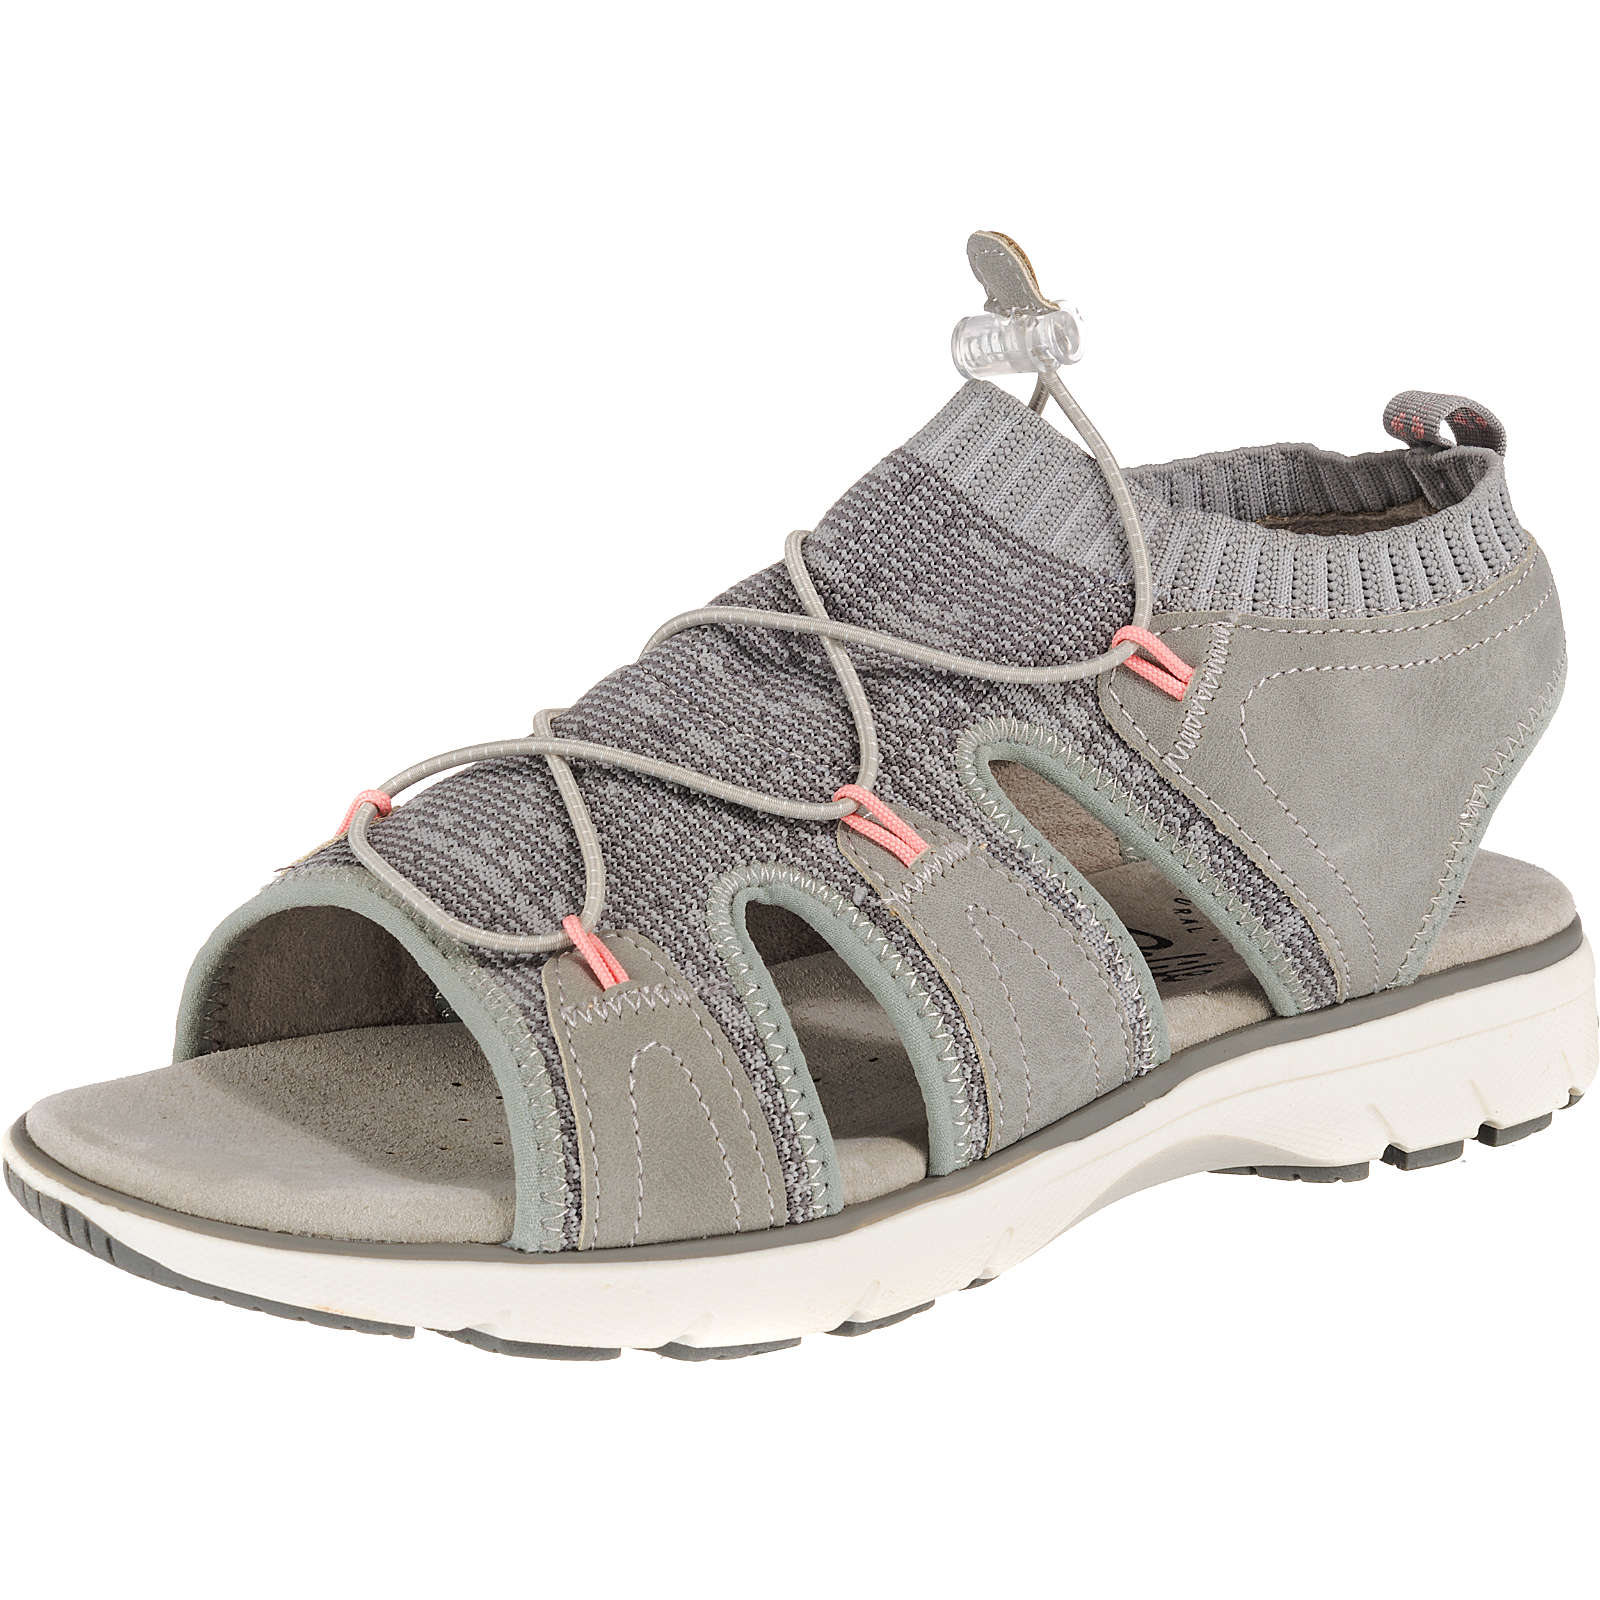 Relife Outdoorsandalen grau Damen Gr. 37